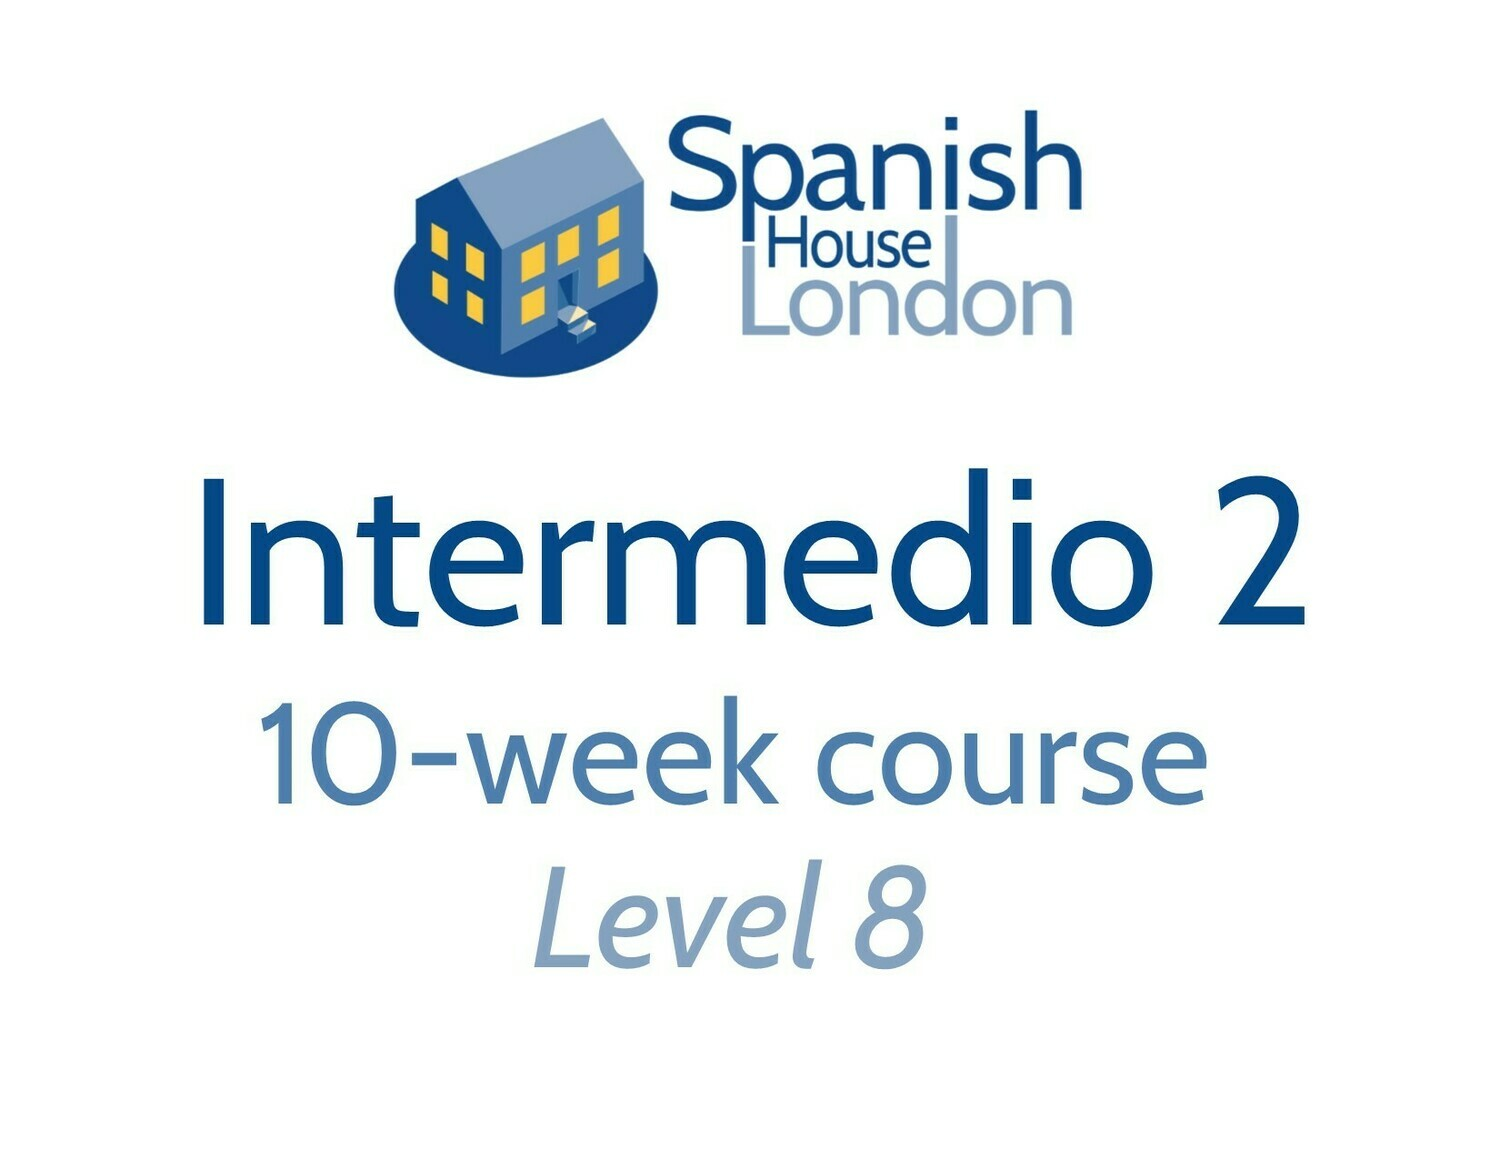 Intermedio 2 Course starting on 26th February at 6pm in Clapham North